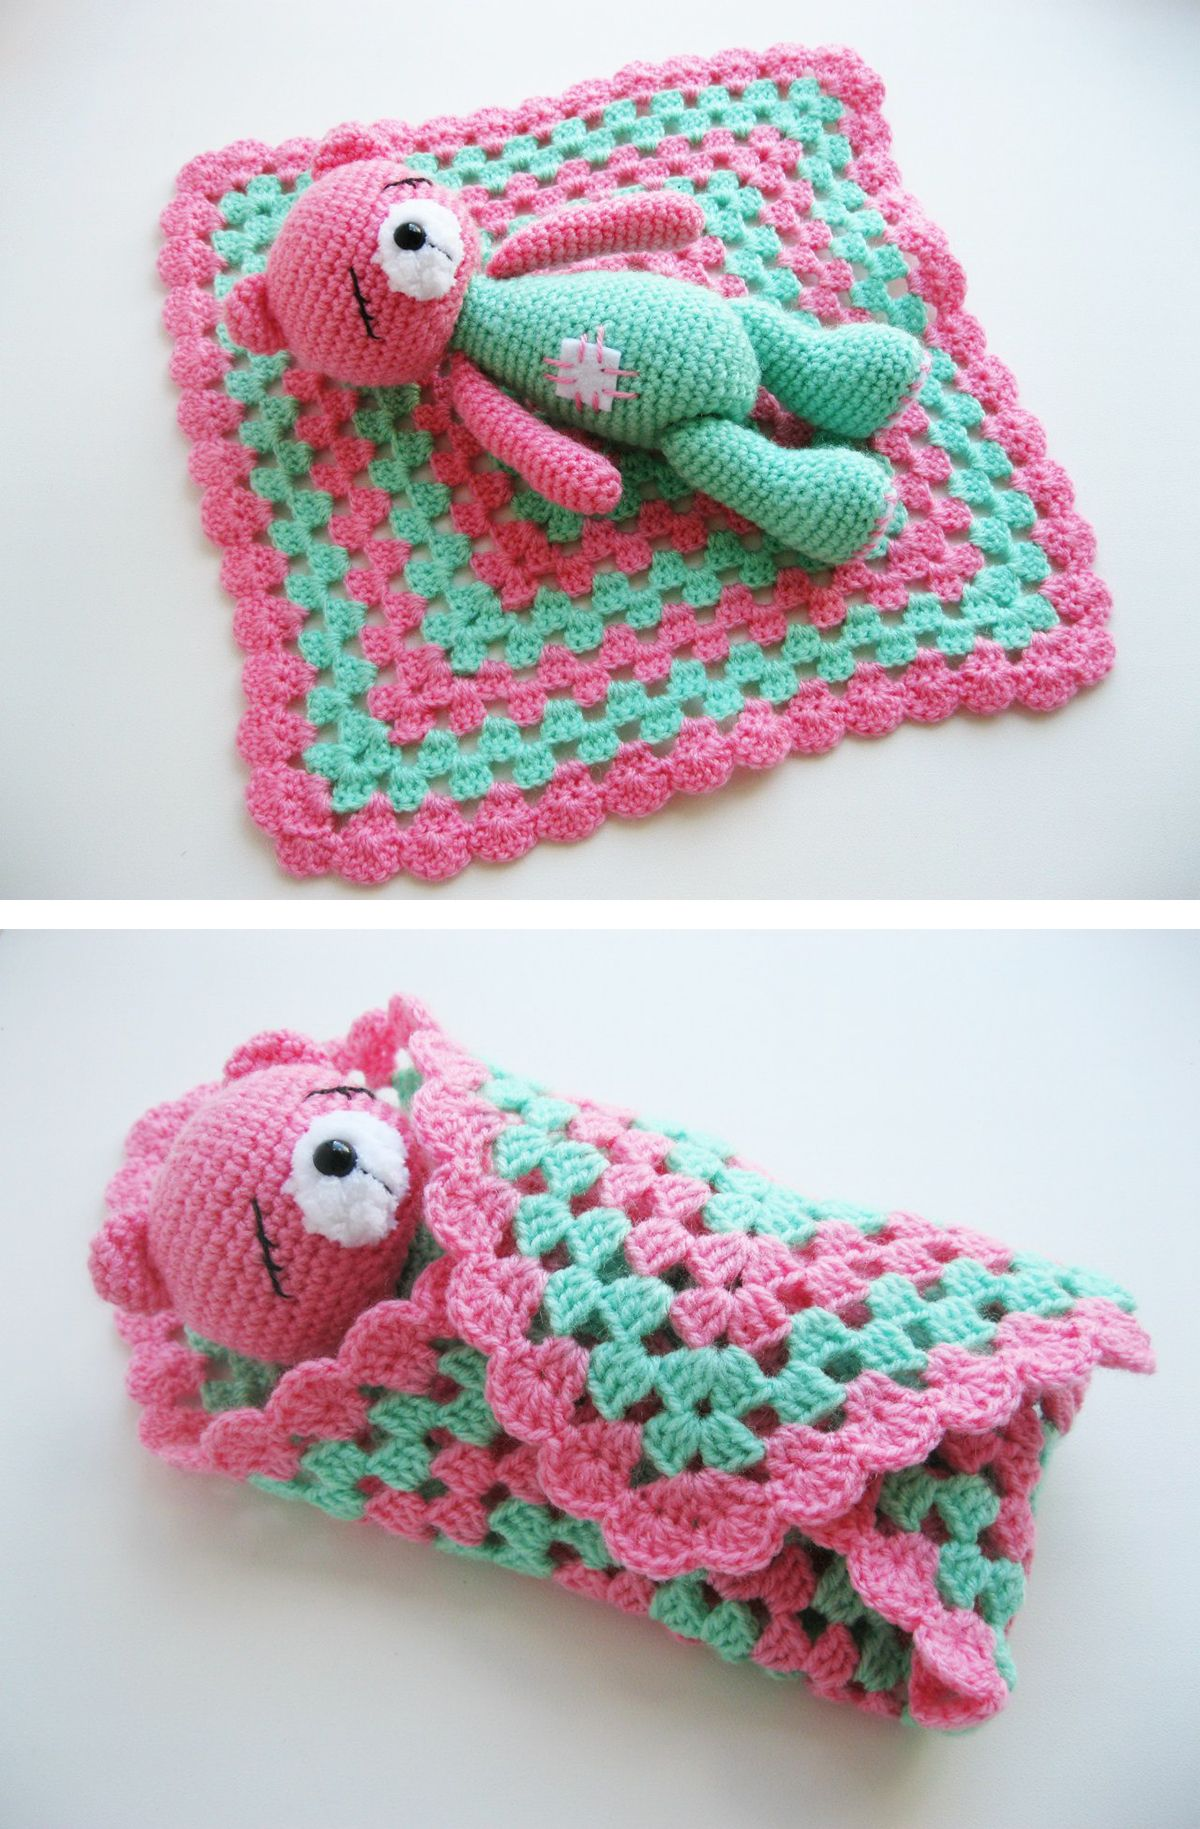 Free crochet sleeping teddy bear pattern this toy will calm down free crochet sleeping teddy bear pattern this toy will calm down your little child and bankloansurffo Choice Image